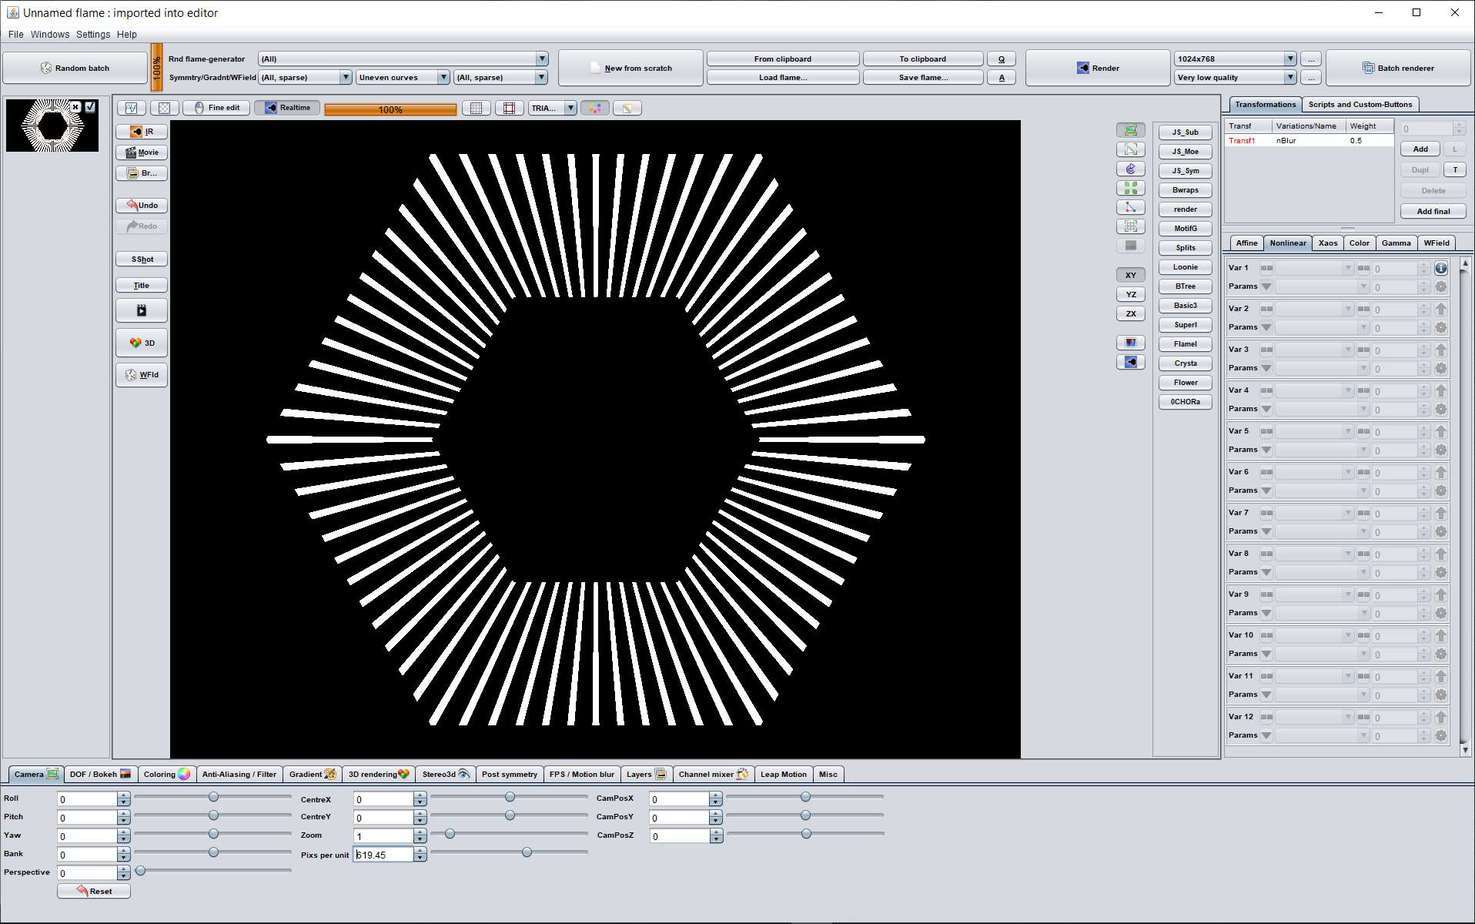 image 000 1 | Complex Numbers Operations for c_var & cut_c variations - Jesus Sosa